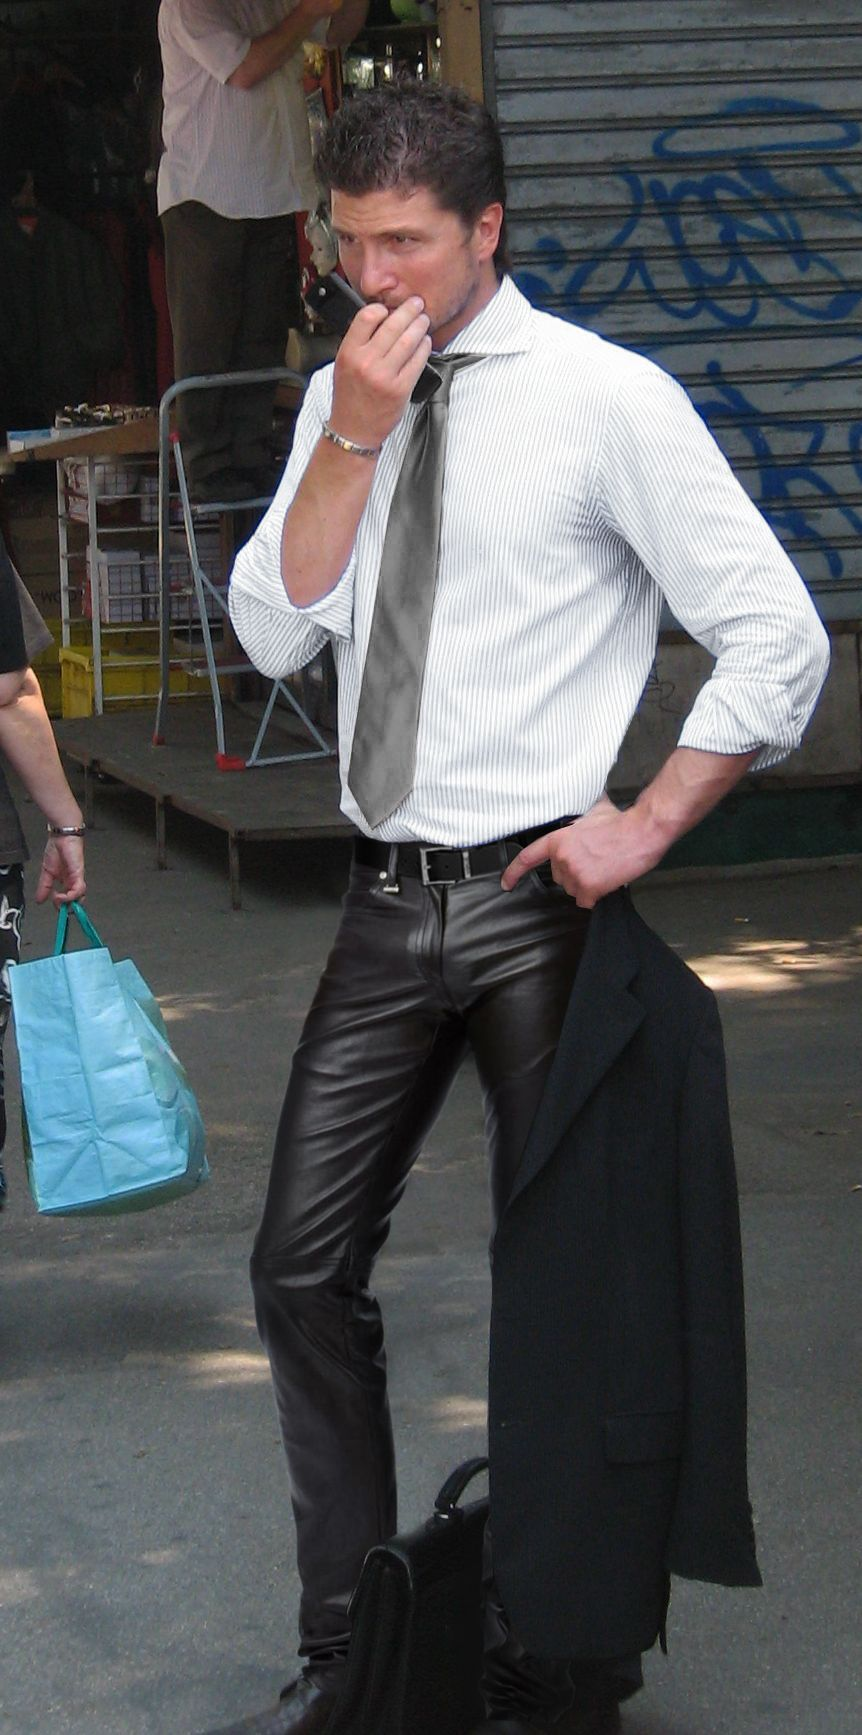 All sizes | Hot Business Man in Leather Pants | Flickr ...